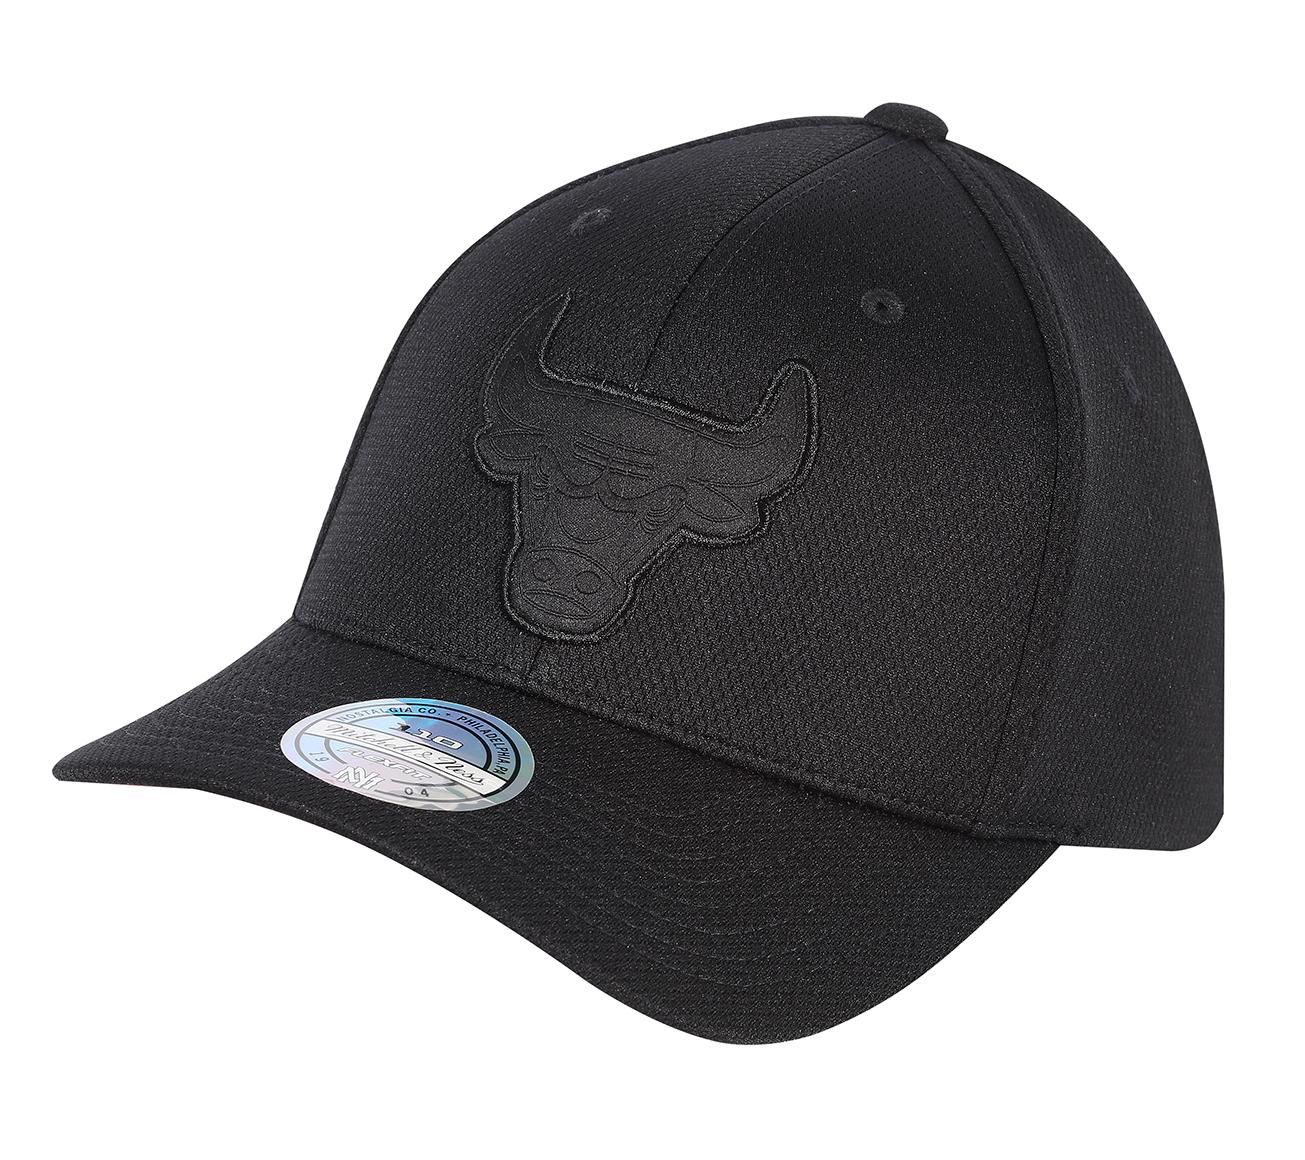 776f37e420d ... Jersey 110 Snapback Our Price  £25.00 ...